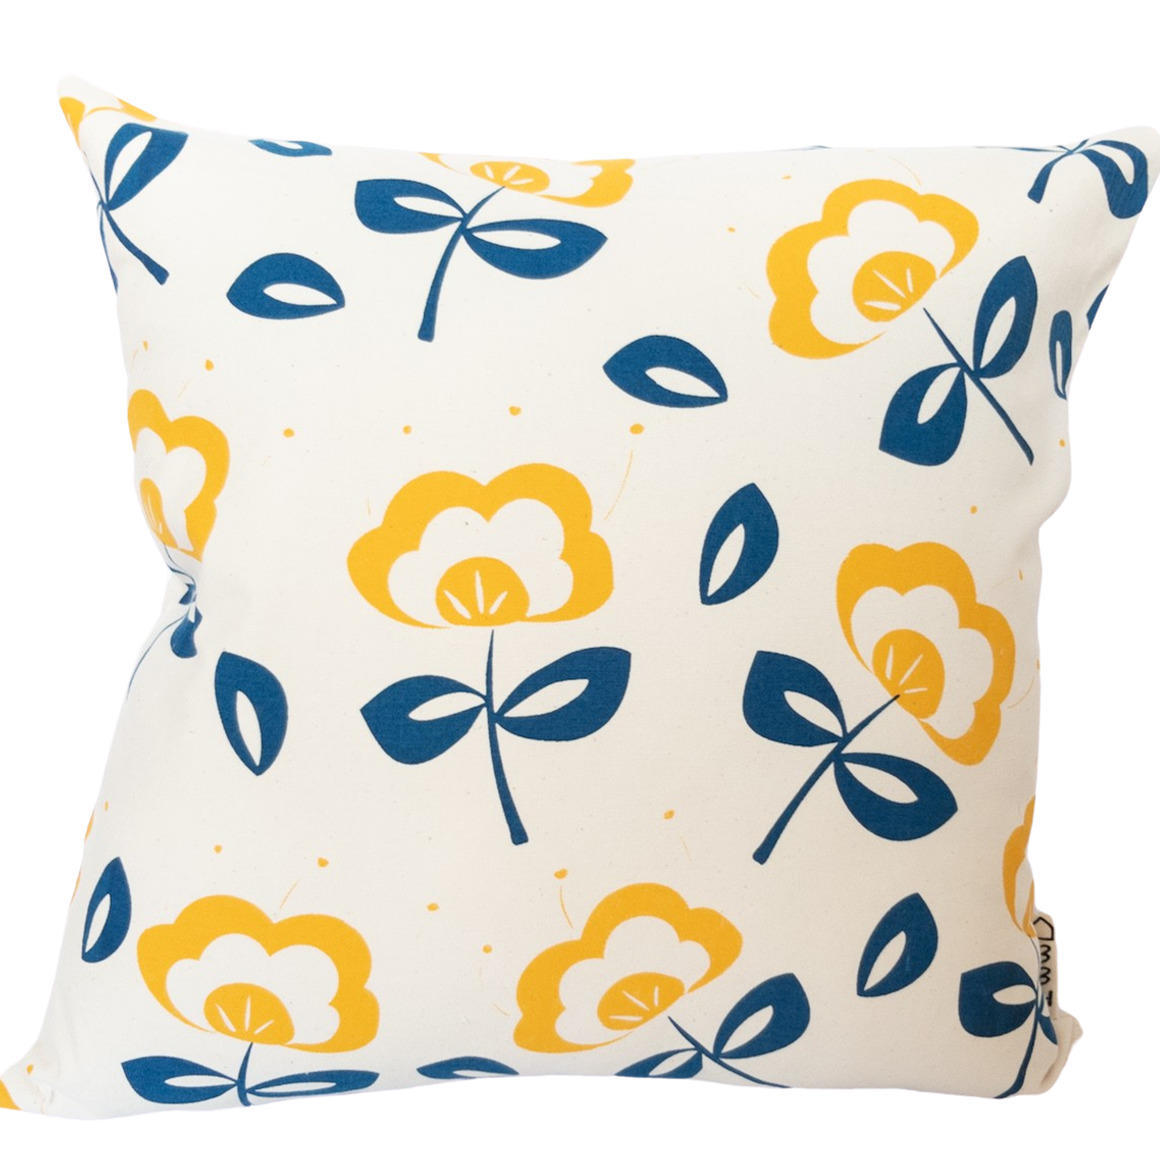 Vintage Inspired  Flower Hand Screen Printed 100% cotton cushion cover- 3 Colourways-Cover and Insert | Trada Marketplace